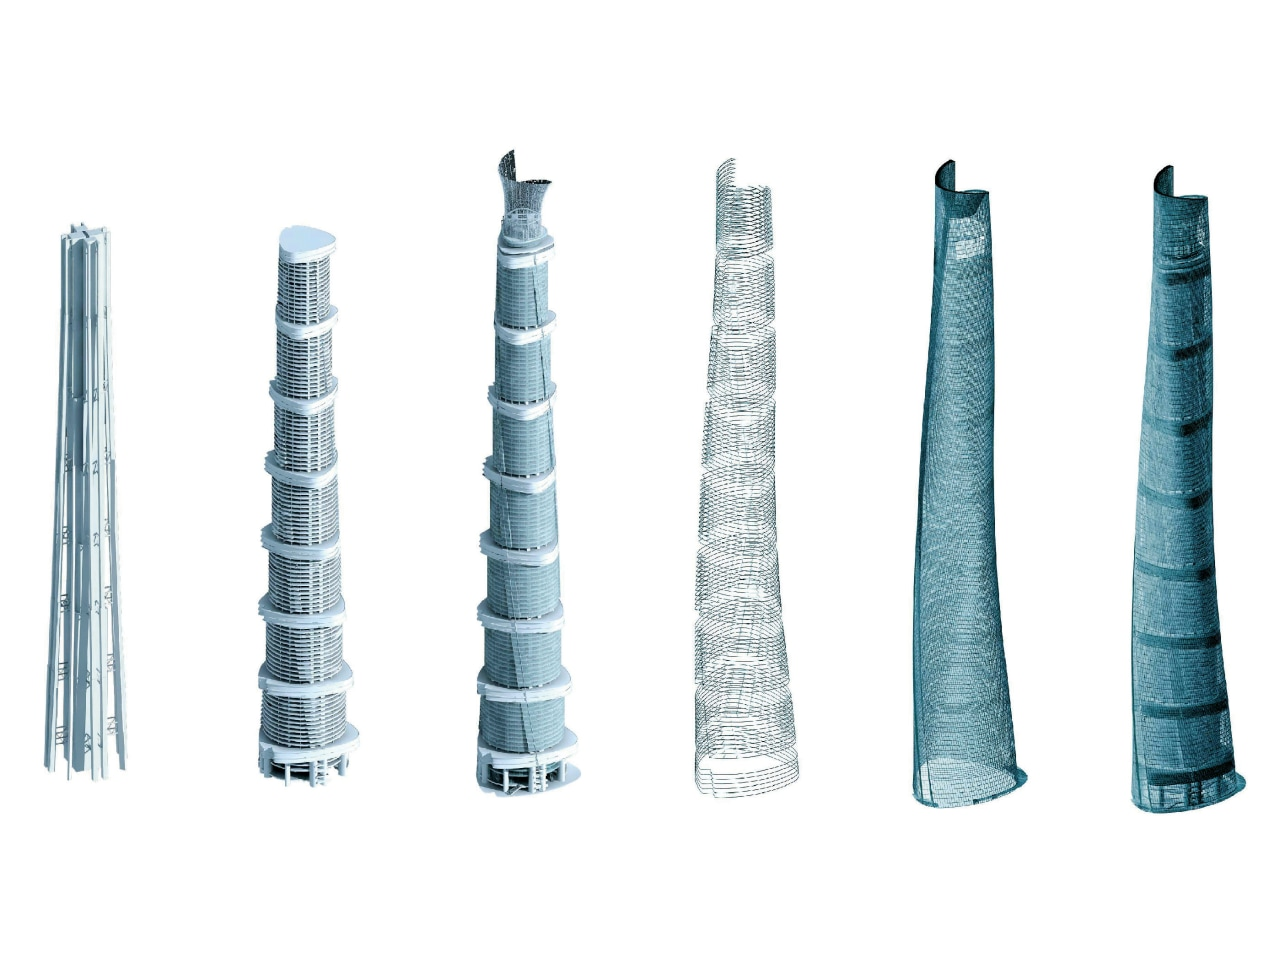 This series of drawings illustrates the layering of cylinder, product, product design, white